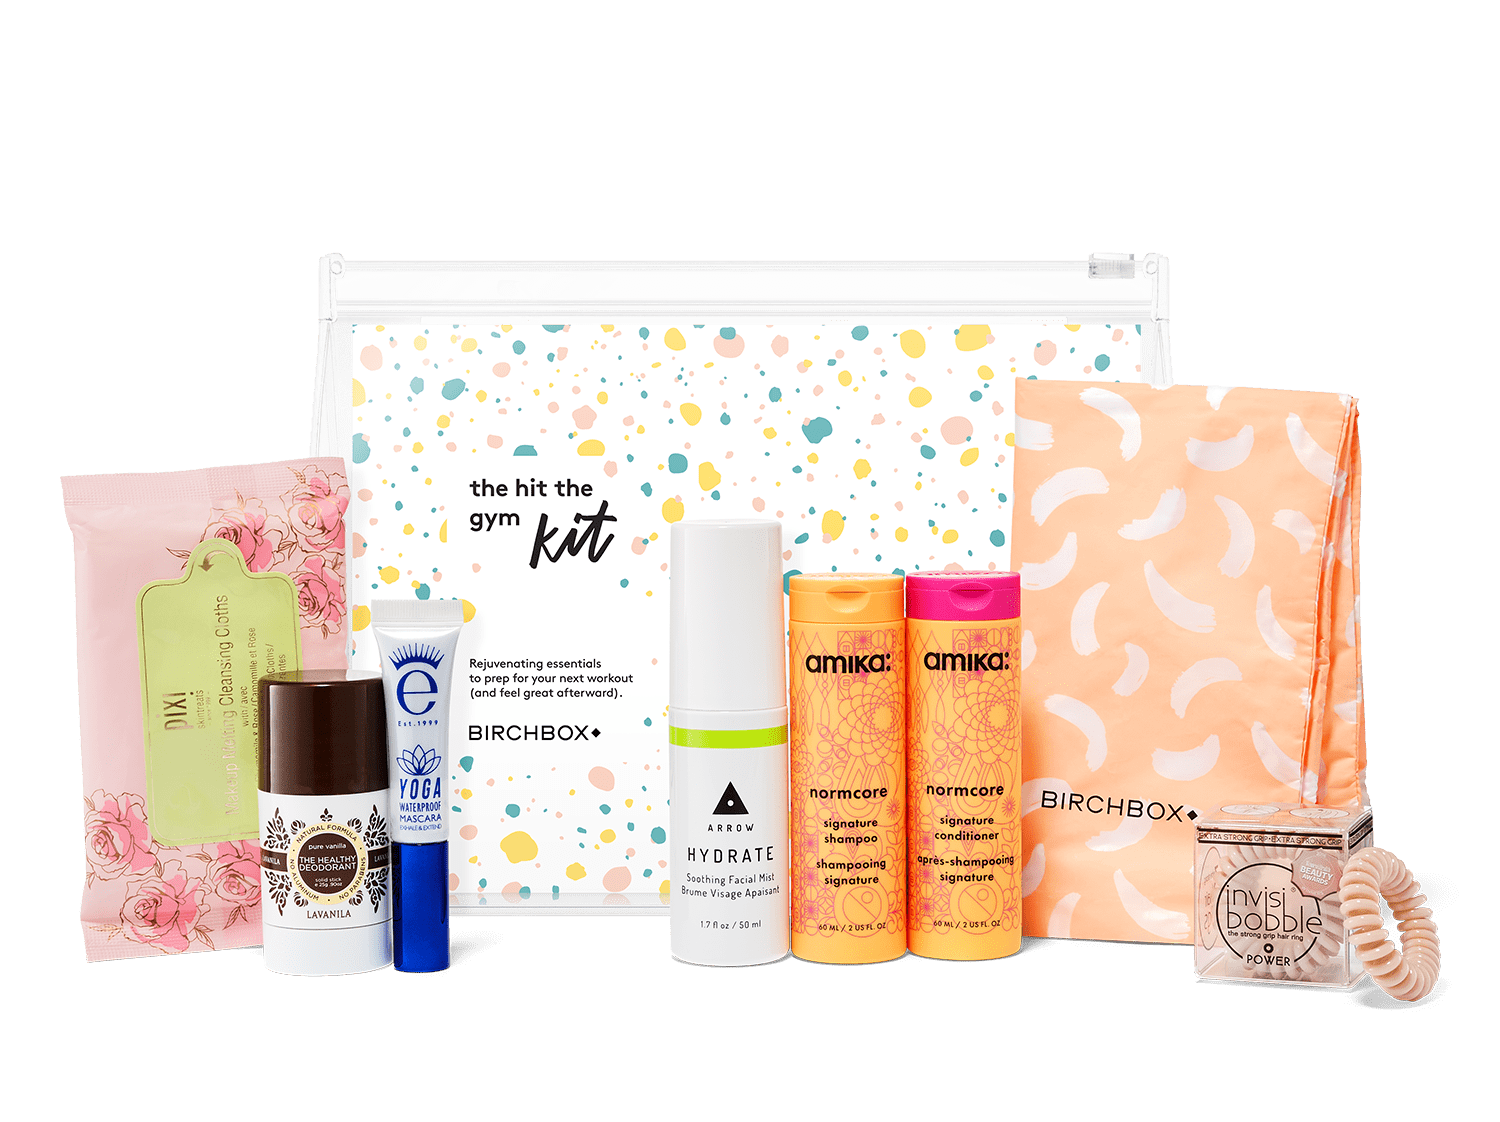 New Birchbox Kit Free Gift Coupons The Hit The Gym Kit